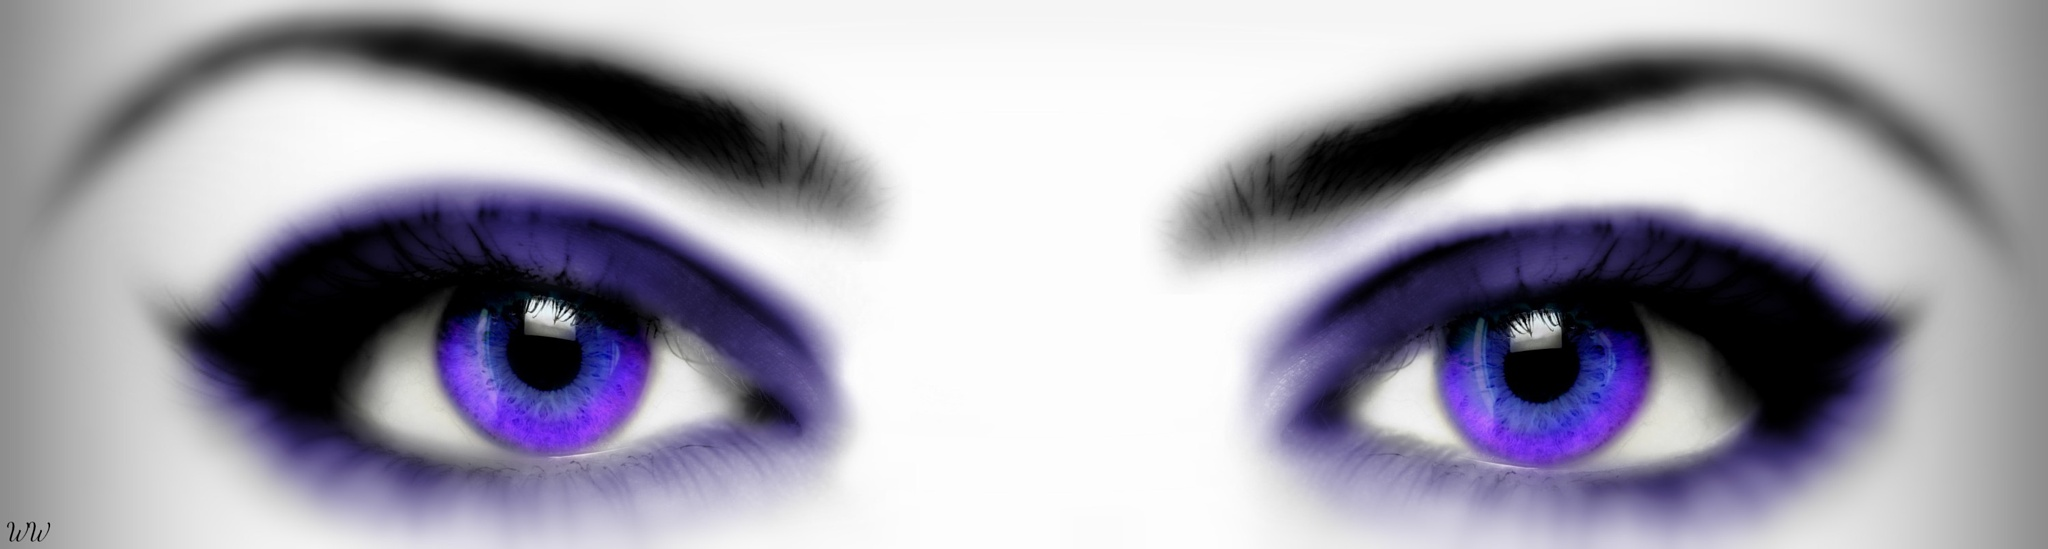 Ombre Eyes with Blur and Tilt/Shift by Emerald City Digital